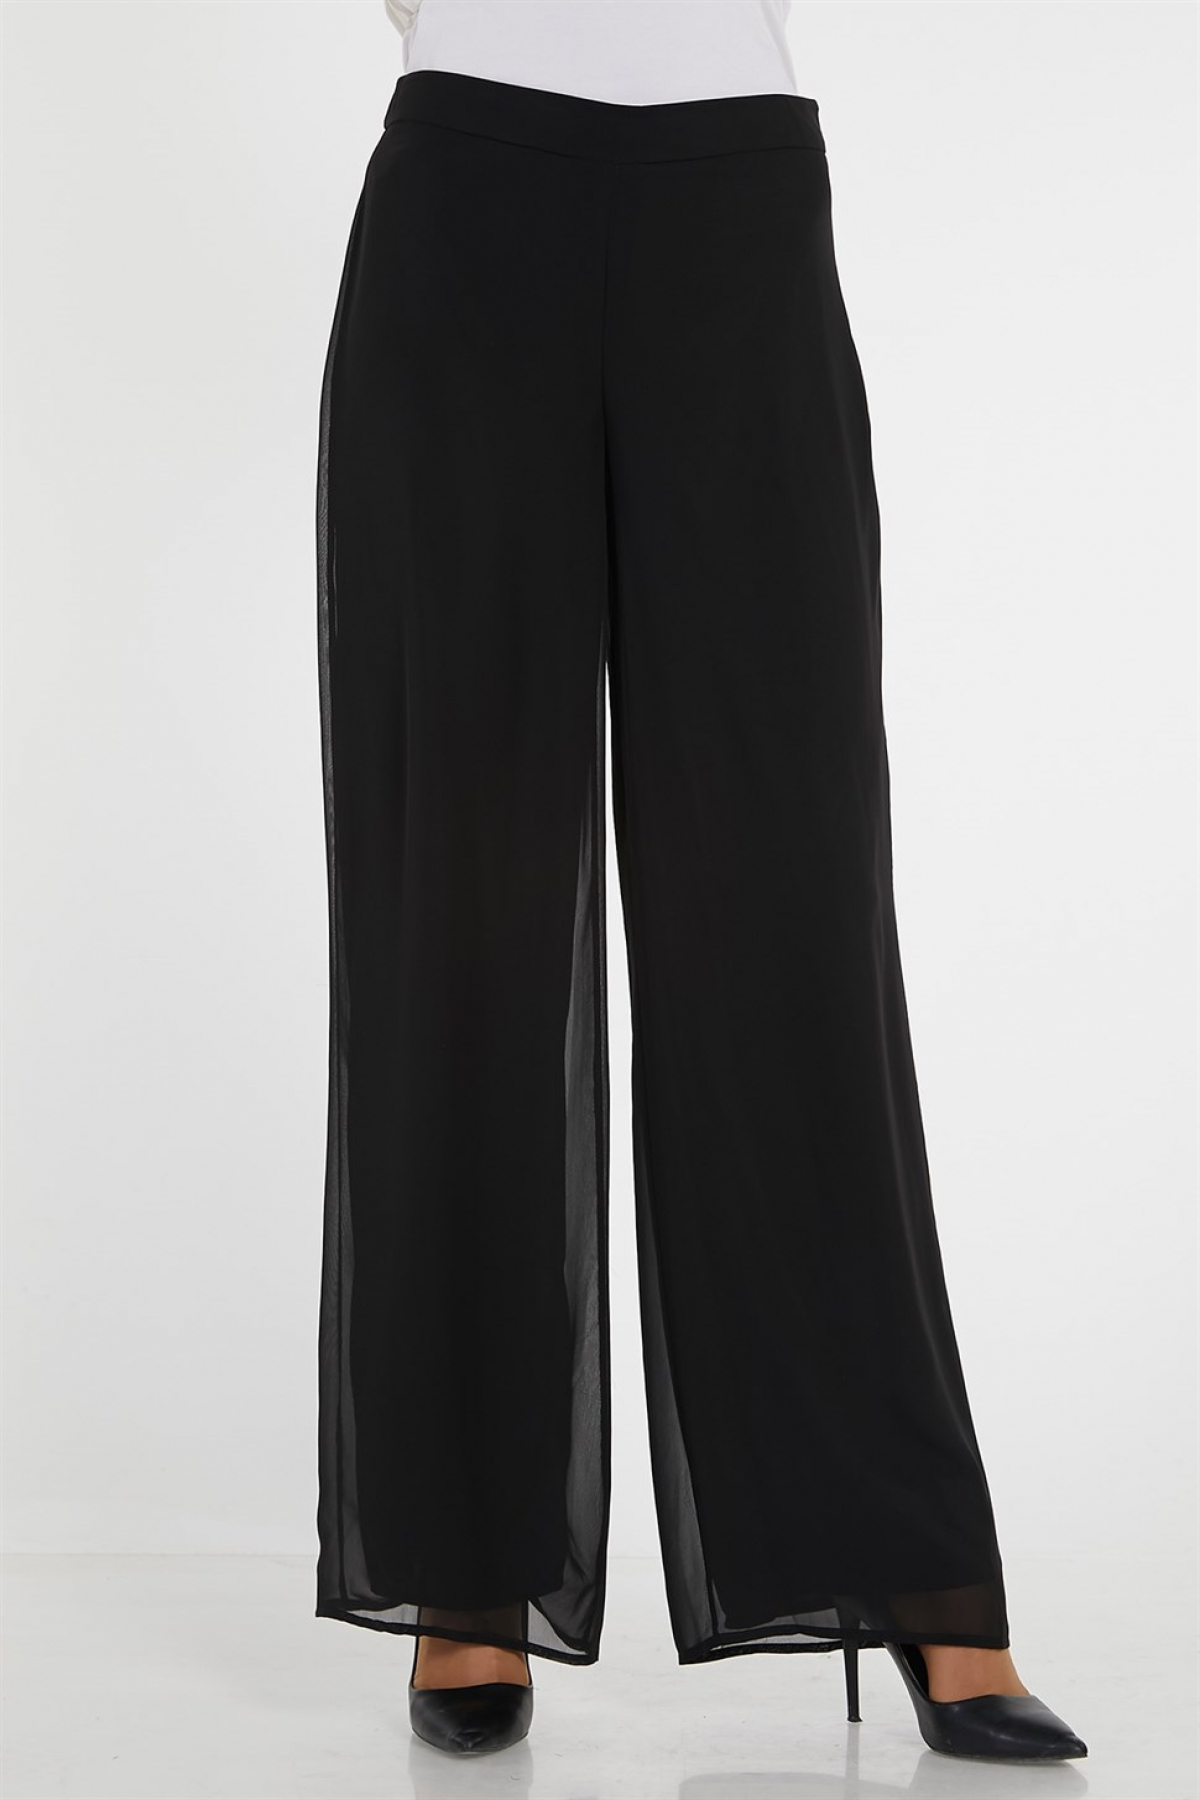 Armine Wide leg Women Pants - 9Y7504 Black